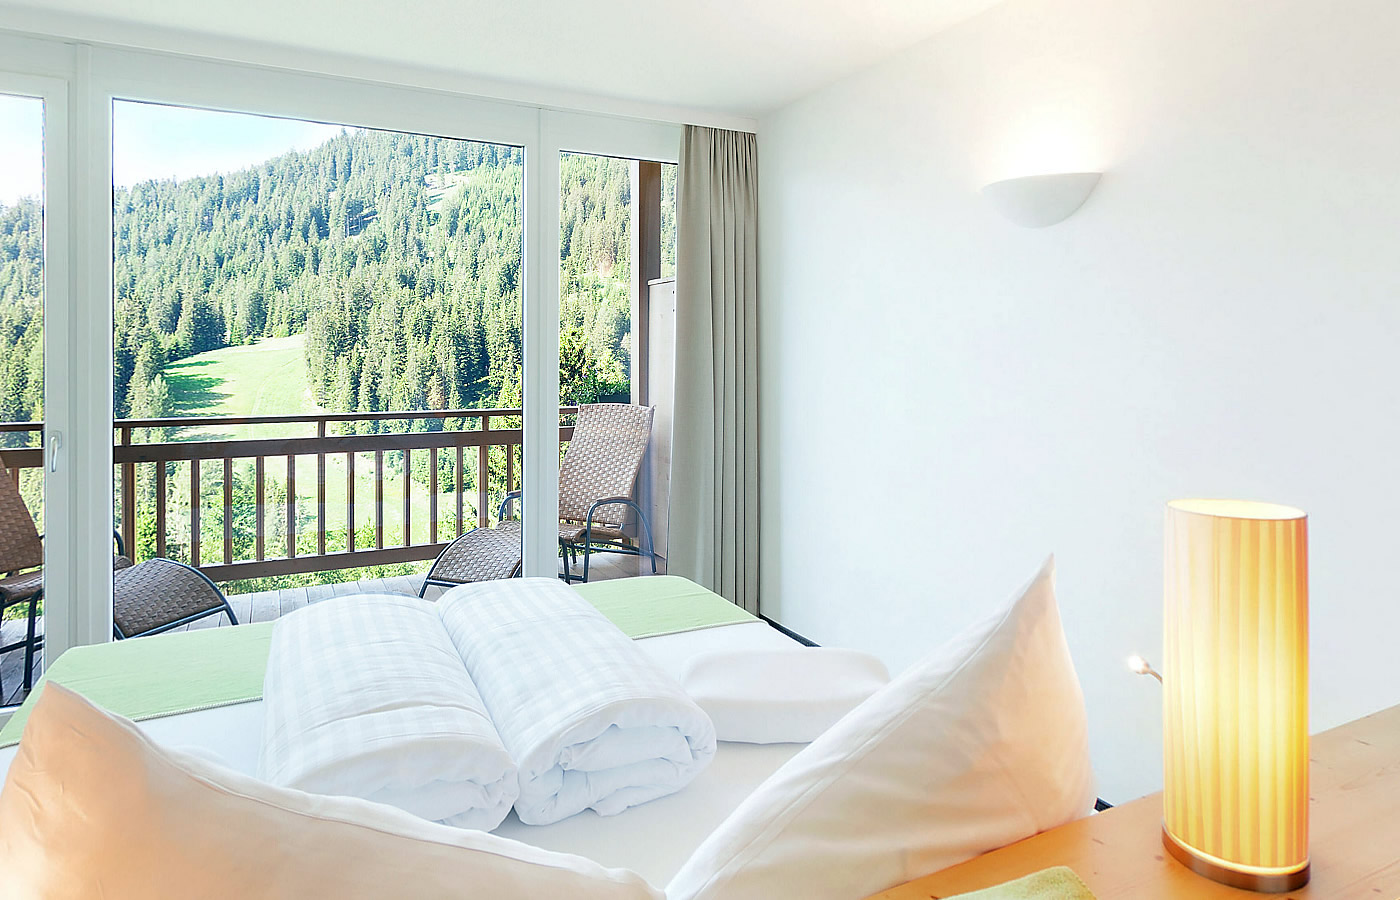 Juniorsuite_Urlaub_1